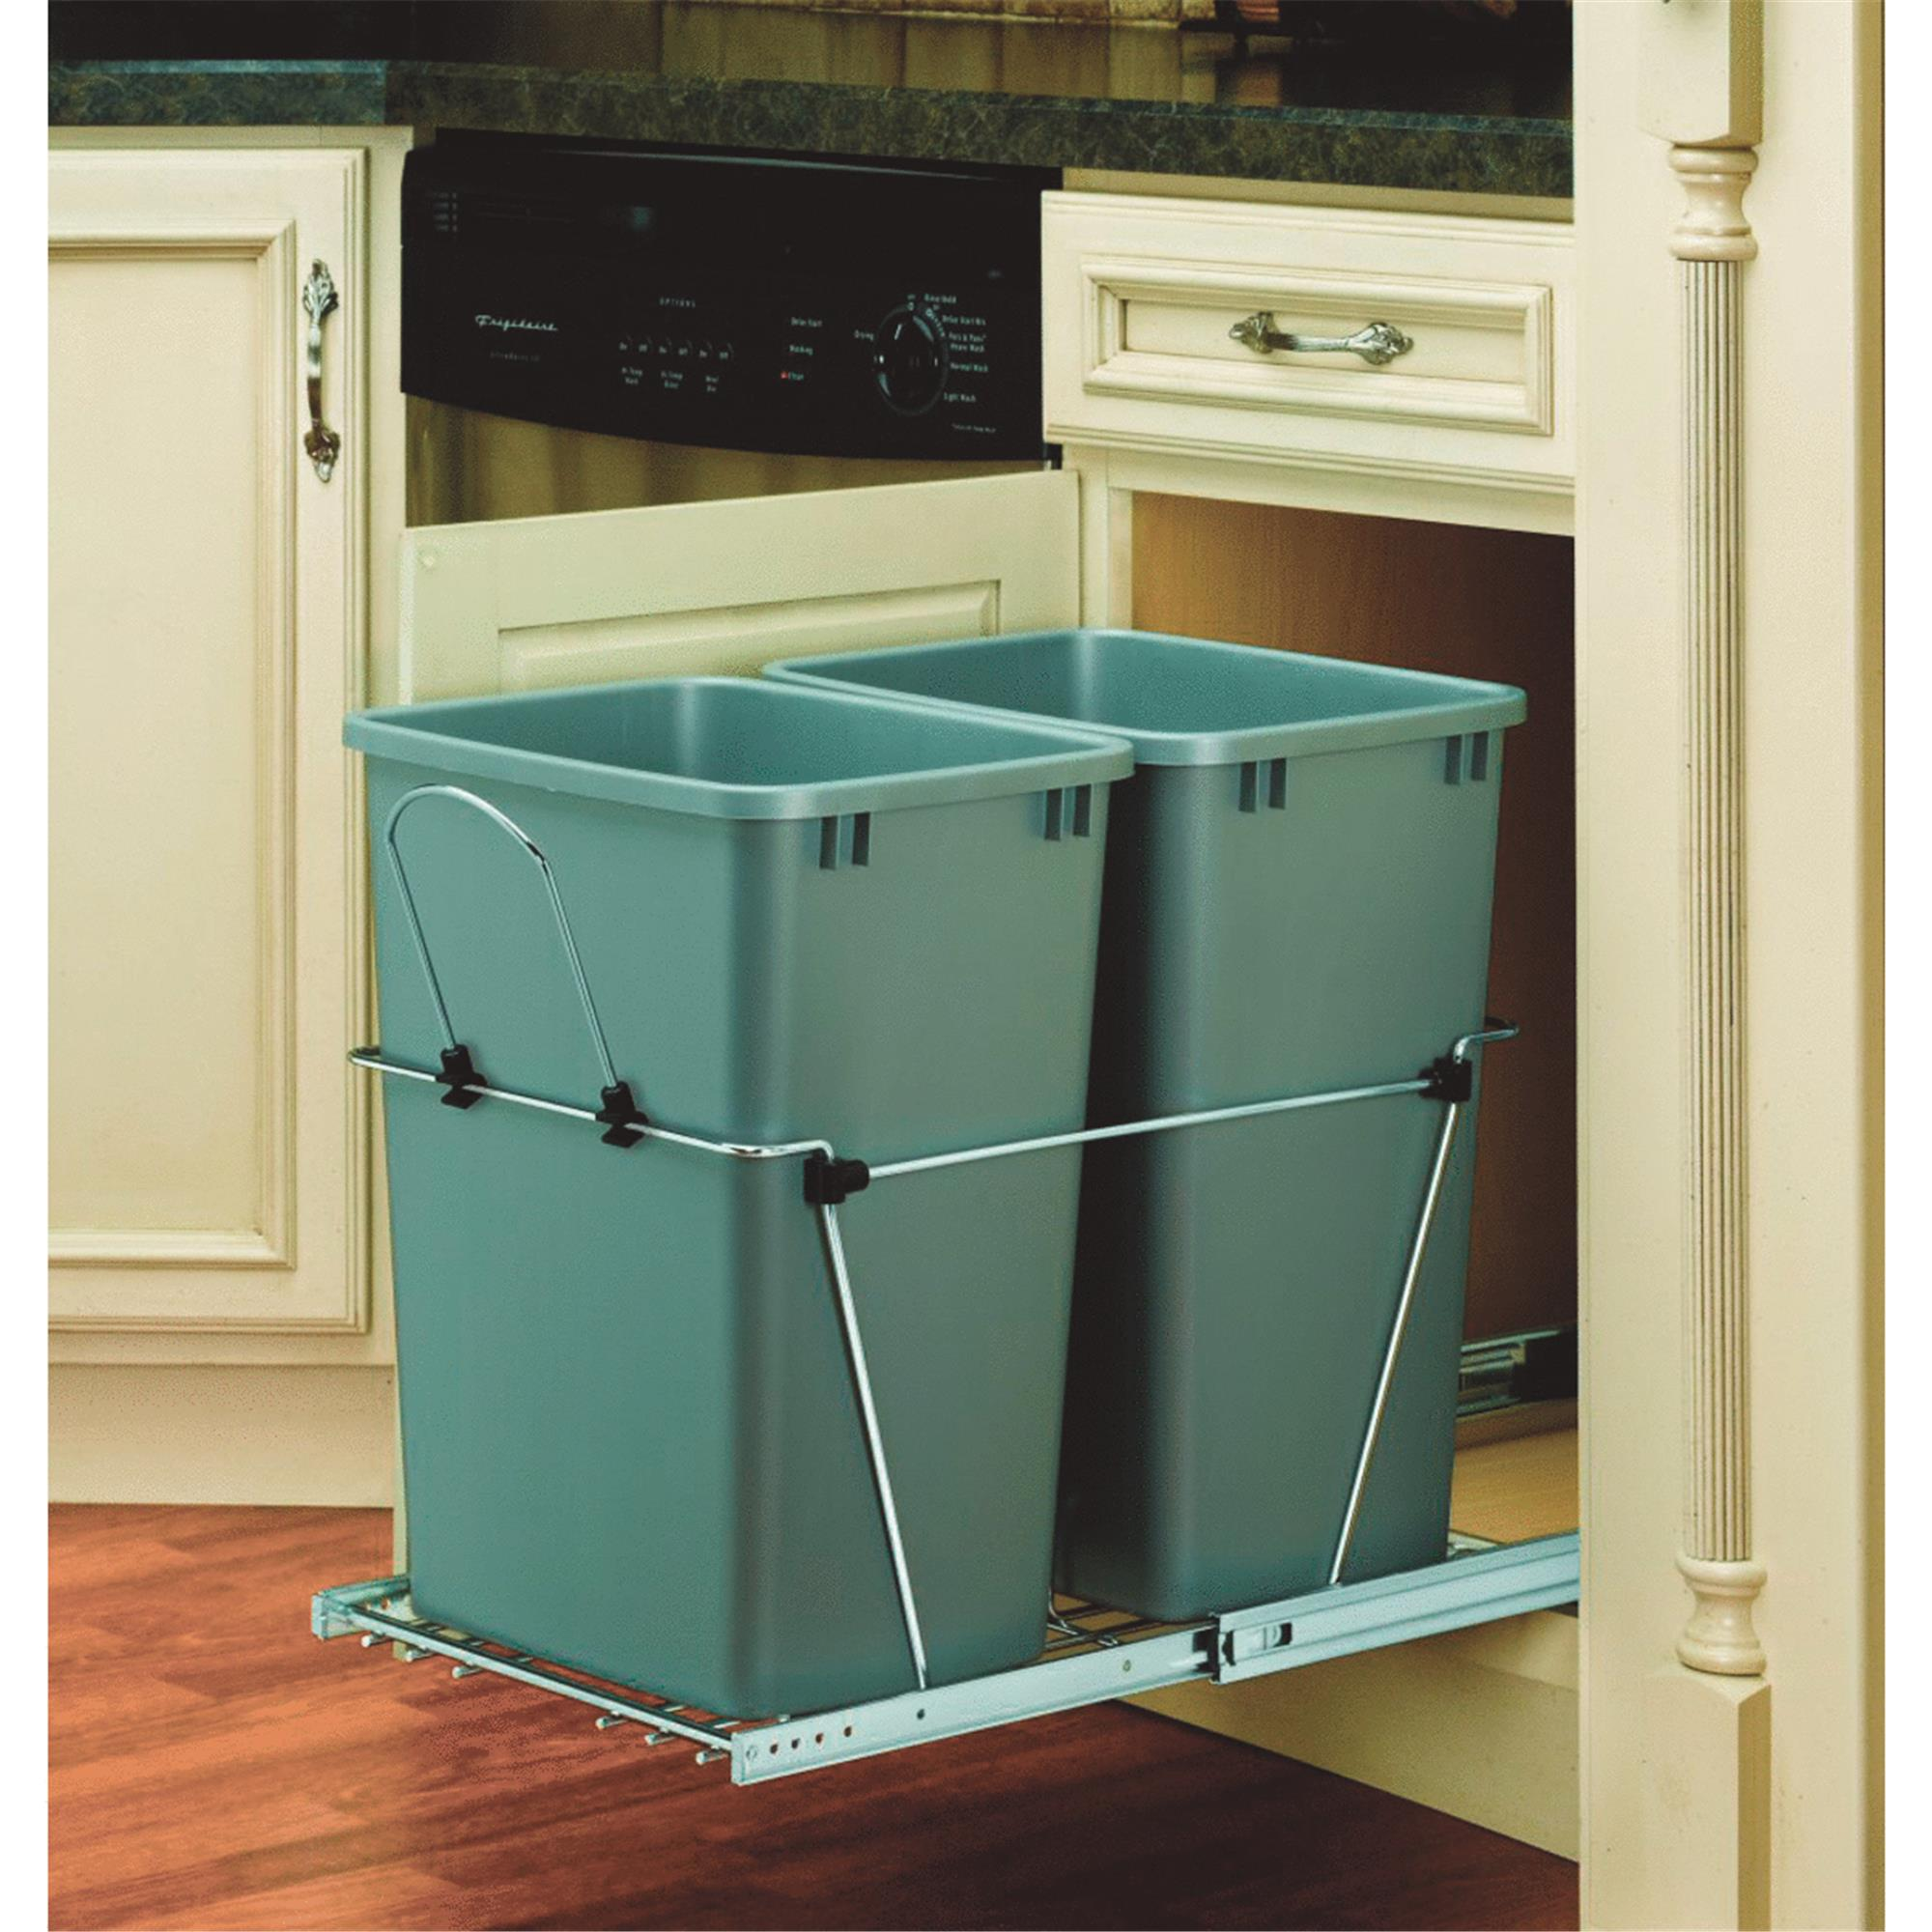 Rev-A-Shelf 35 Quart Double Pull-Out Waste Container